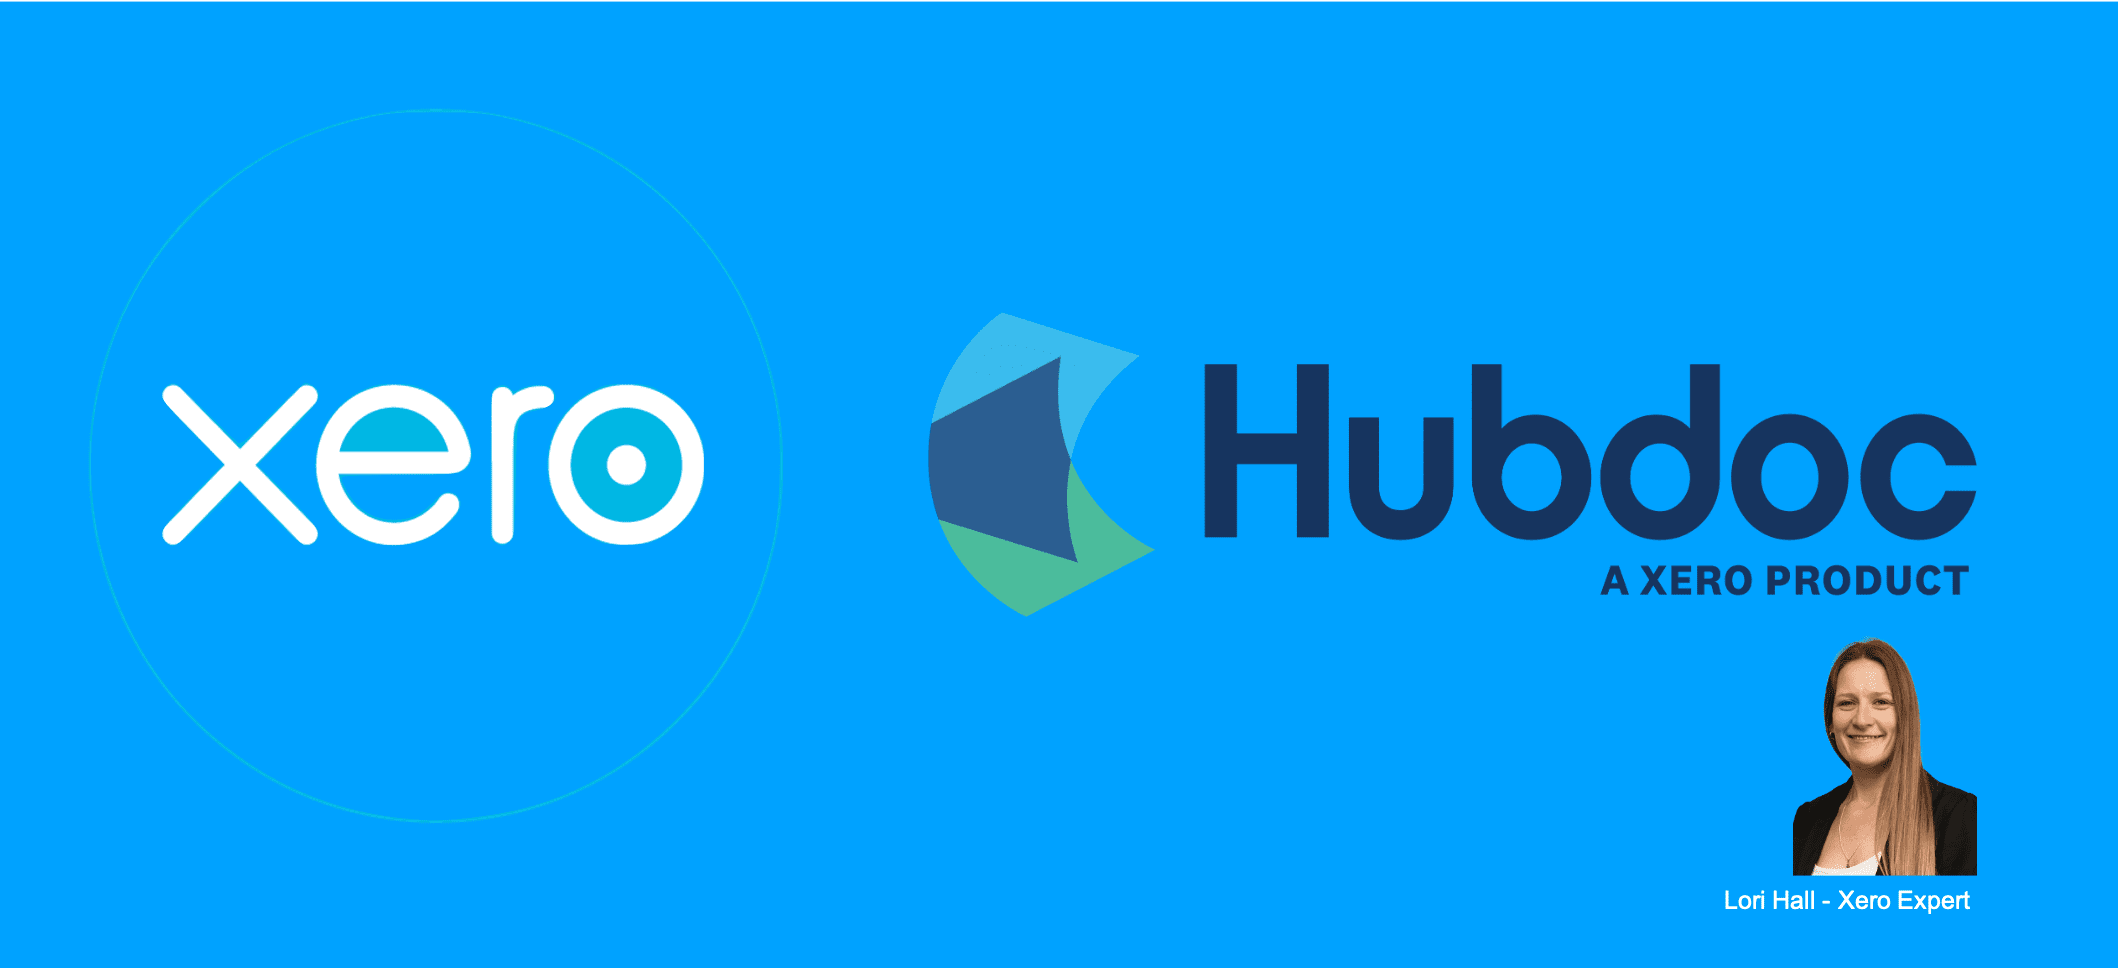 XERO JUST GOT SO MUCH BETTER!! NOW IT INCLUDES HUBDOCATNO EXTRA COST!!!